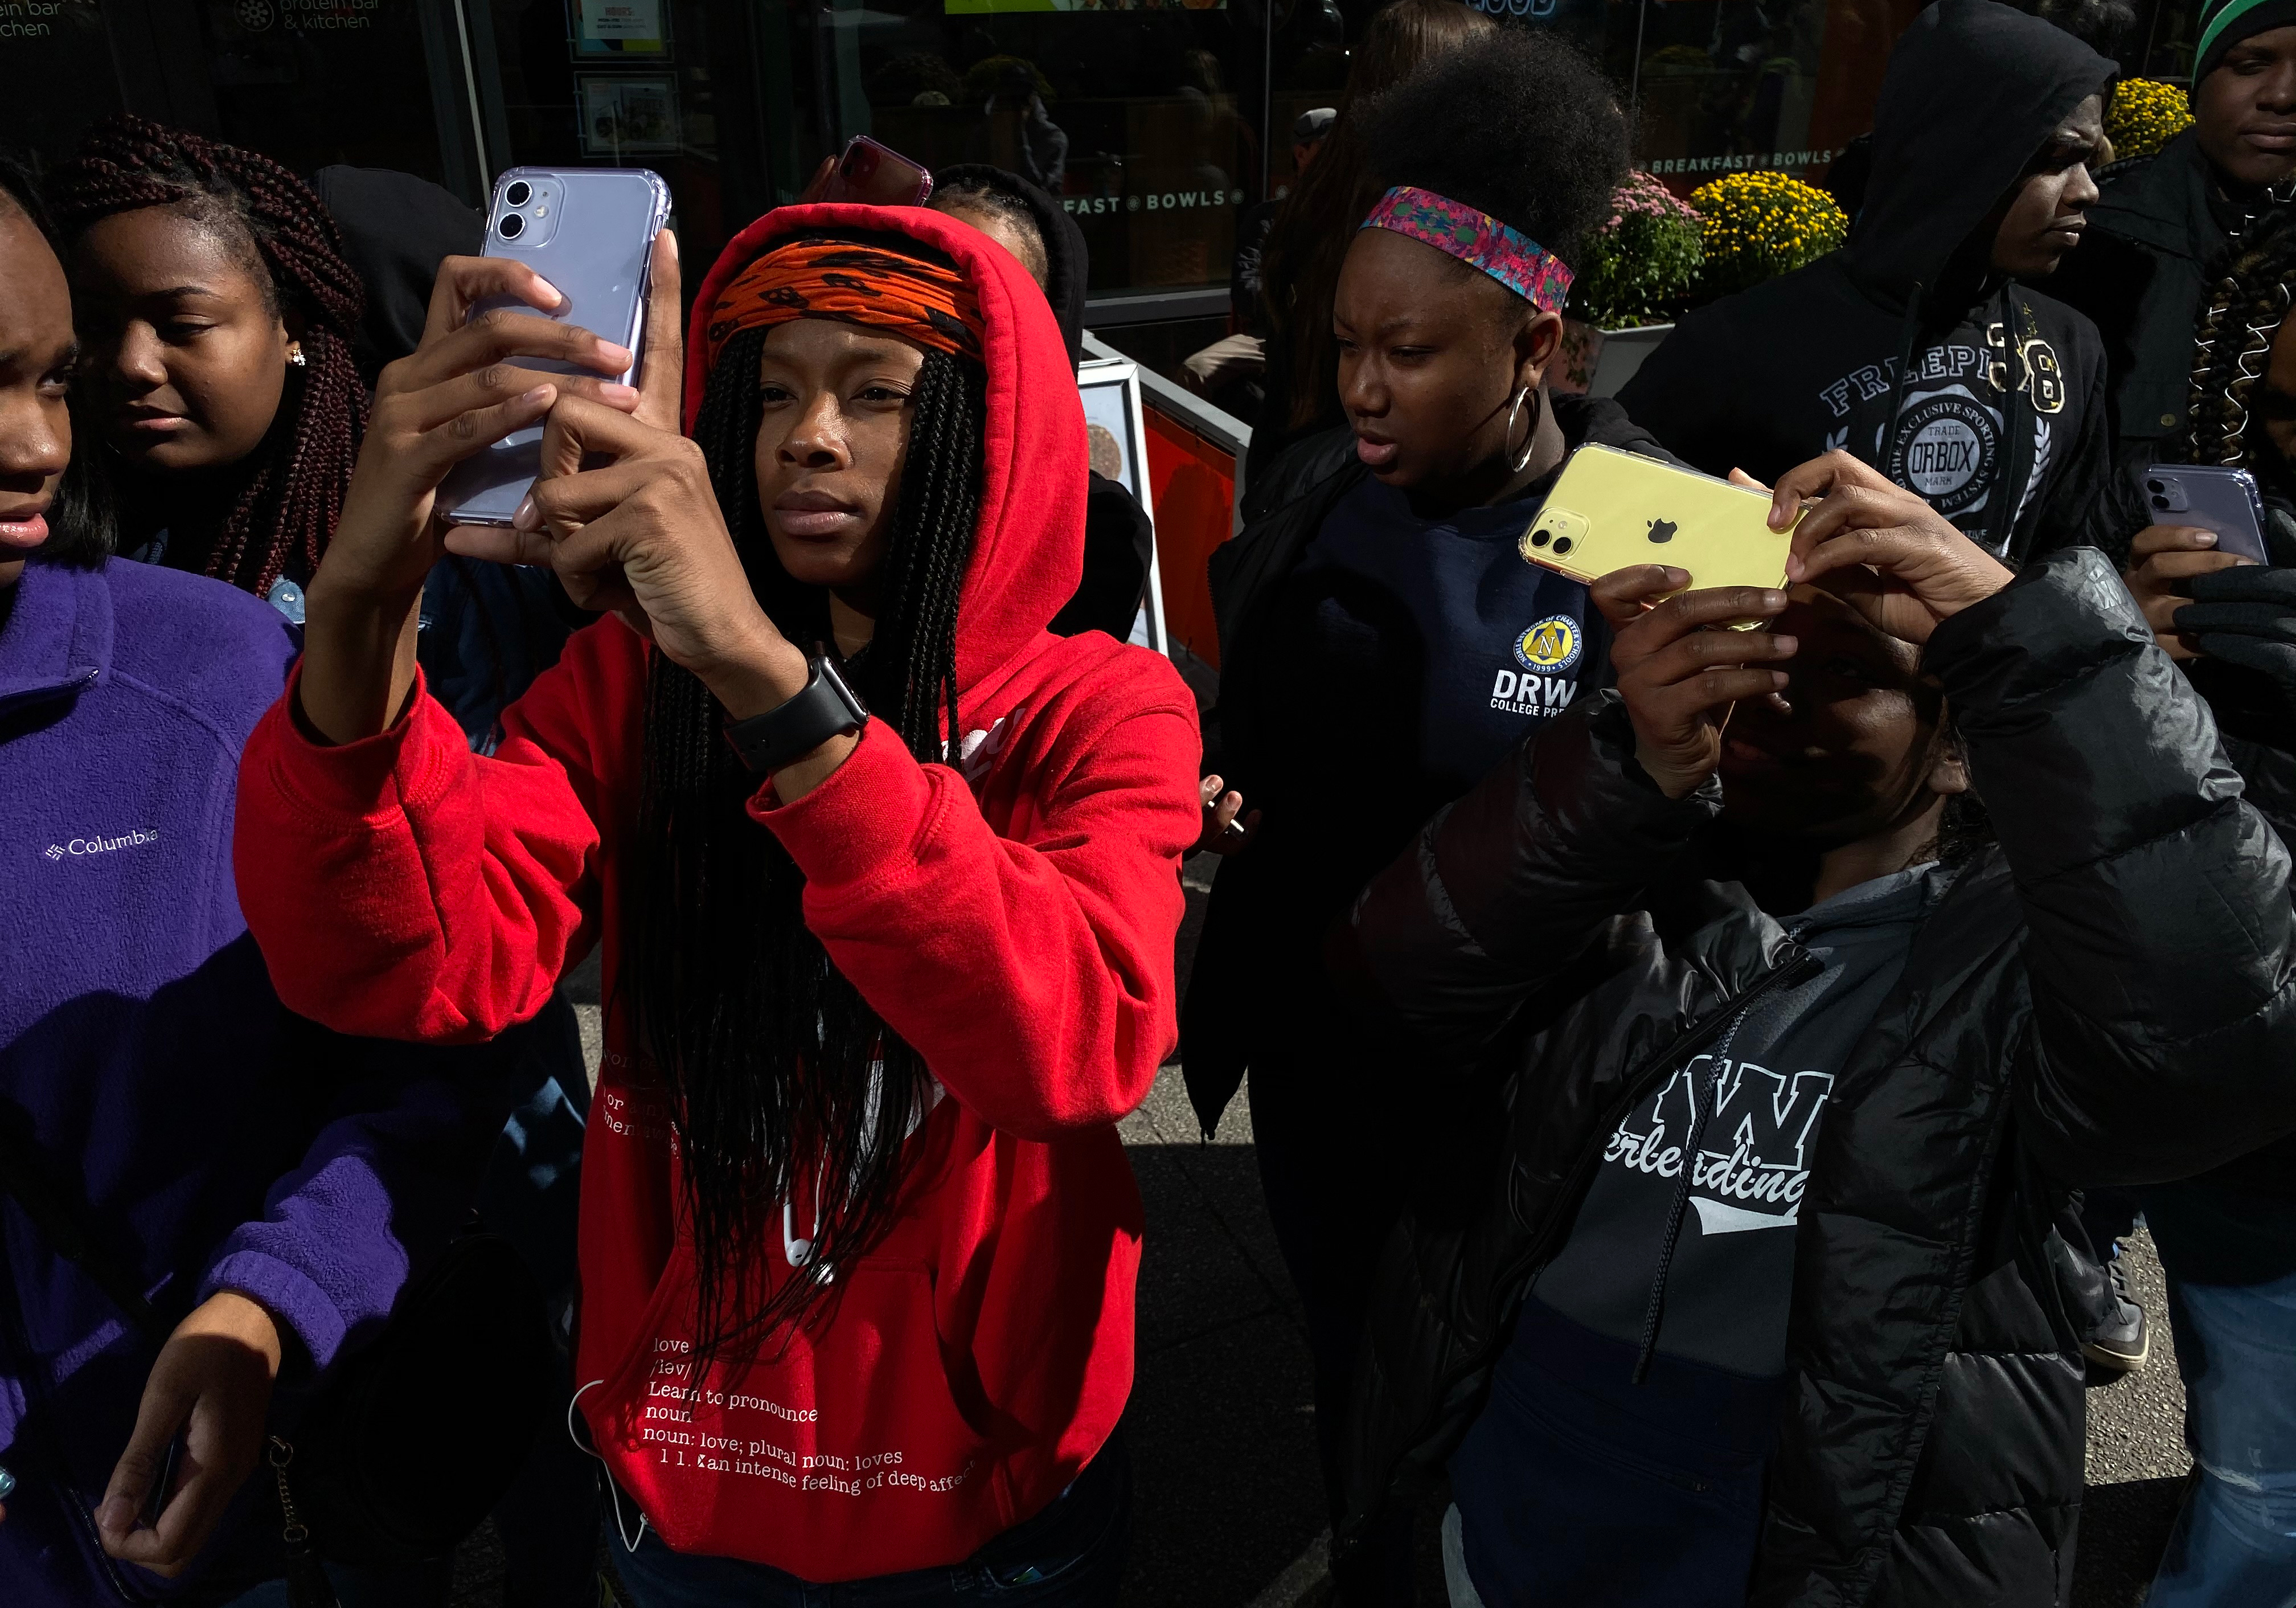 Apple Partners With Chicago-Based Nonprofit to Teach iPhone Photography